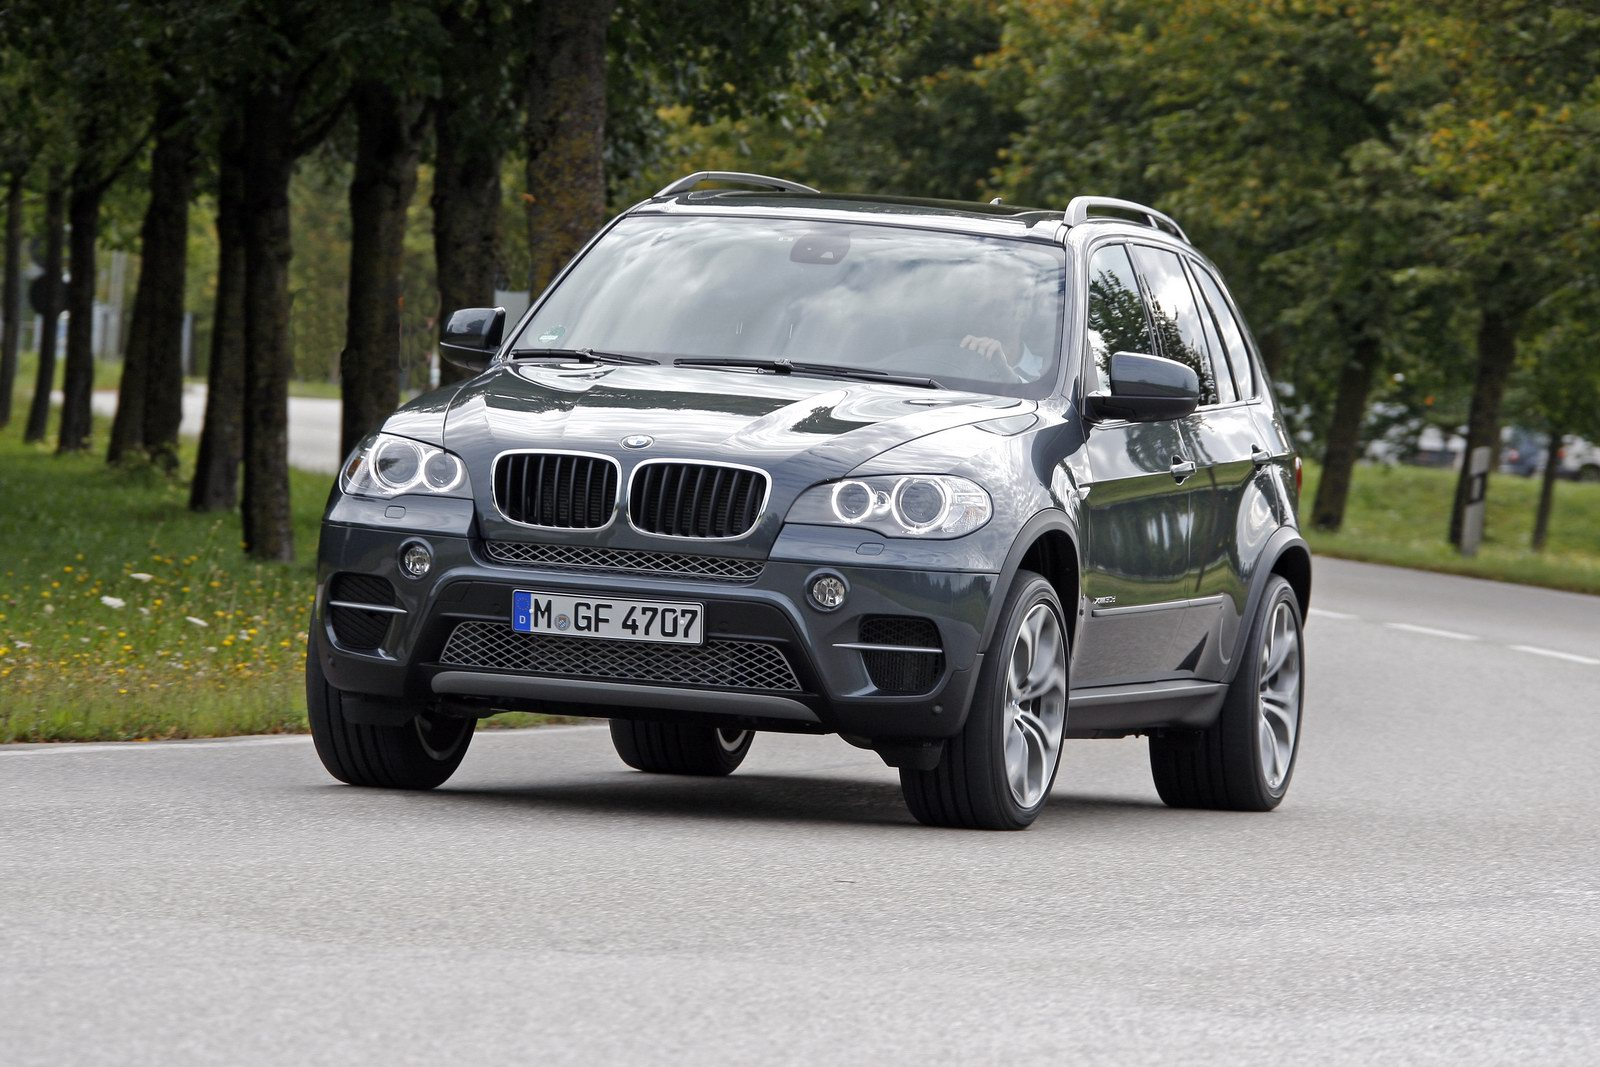 E70 Bmw X5 Recalled Over Power Steering Problems Bmwcoop